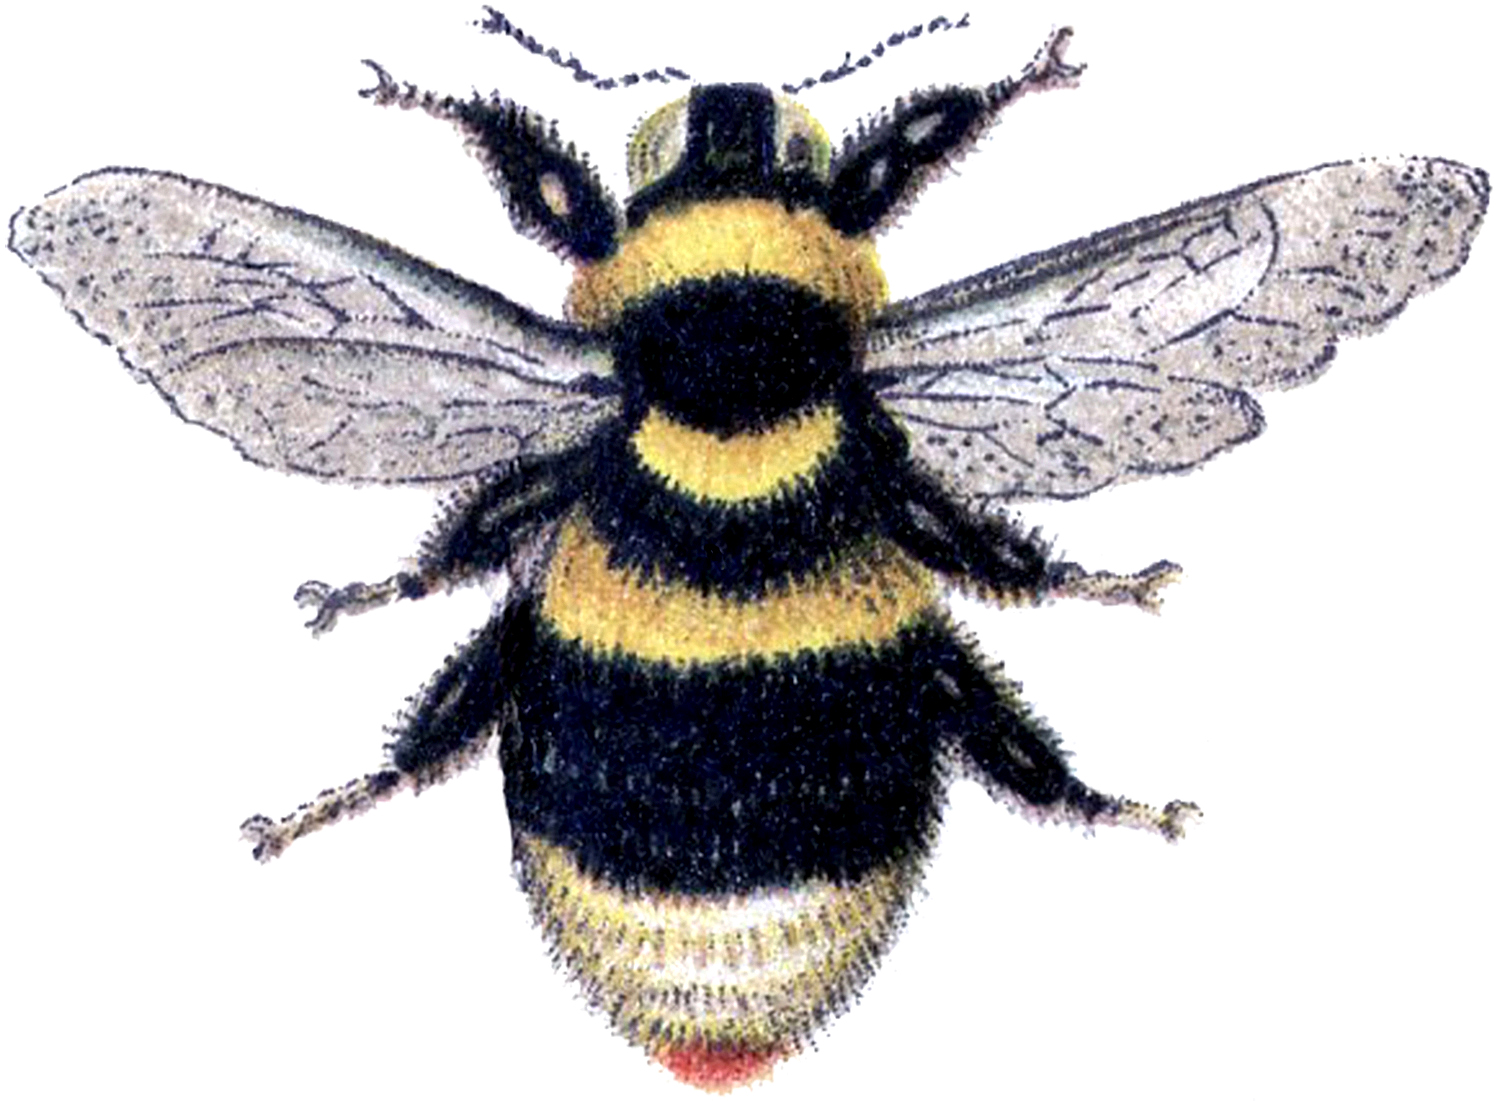 Marvelous bumblebee image the. Bee clip art vintage graphic library library